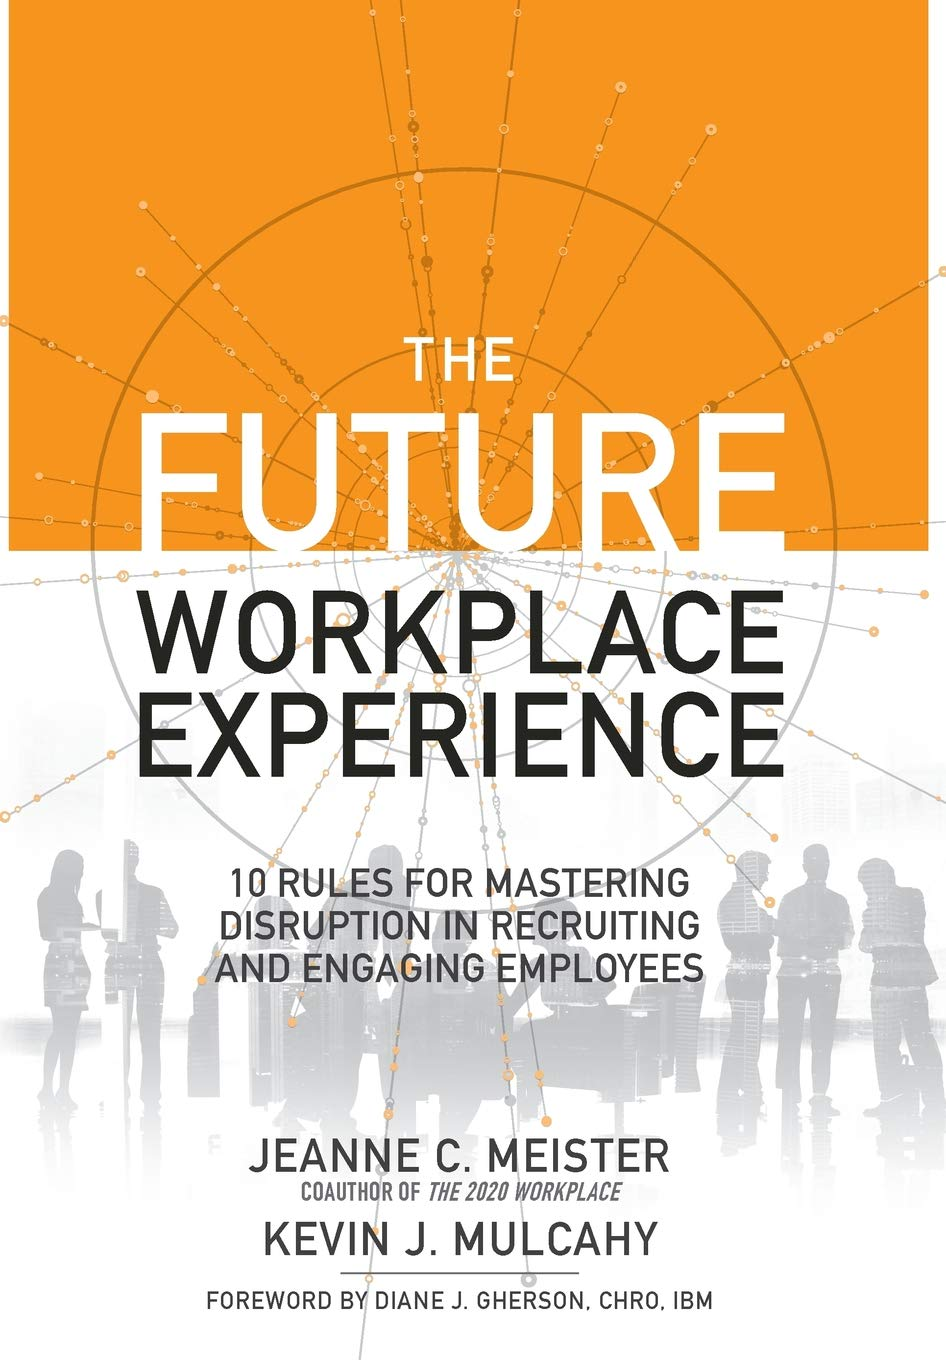 The Future Workplace Experience: 10 Rules For Mastering